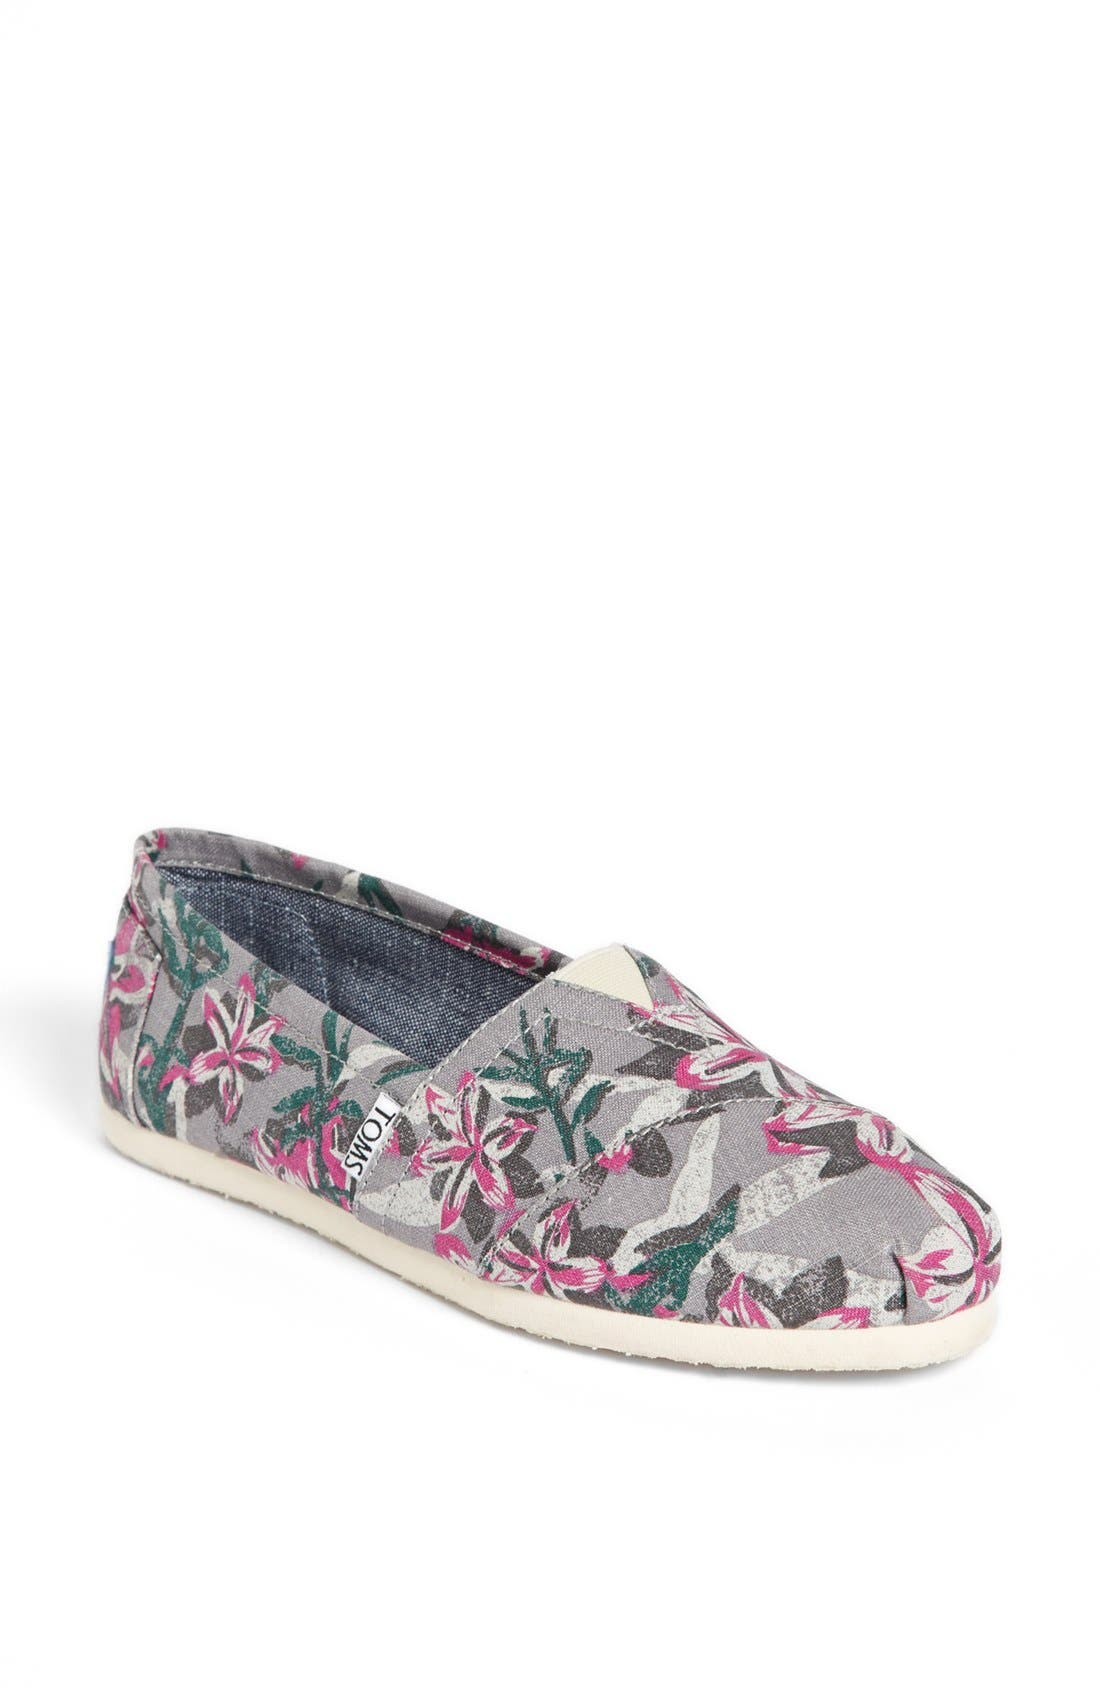 Alternate Image 1 Selected - TOMS 'Classic - Grey Floral' Vegan Slip-On (Women)